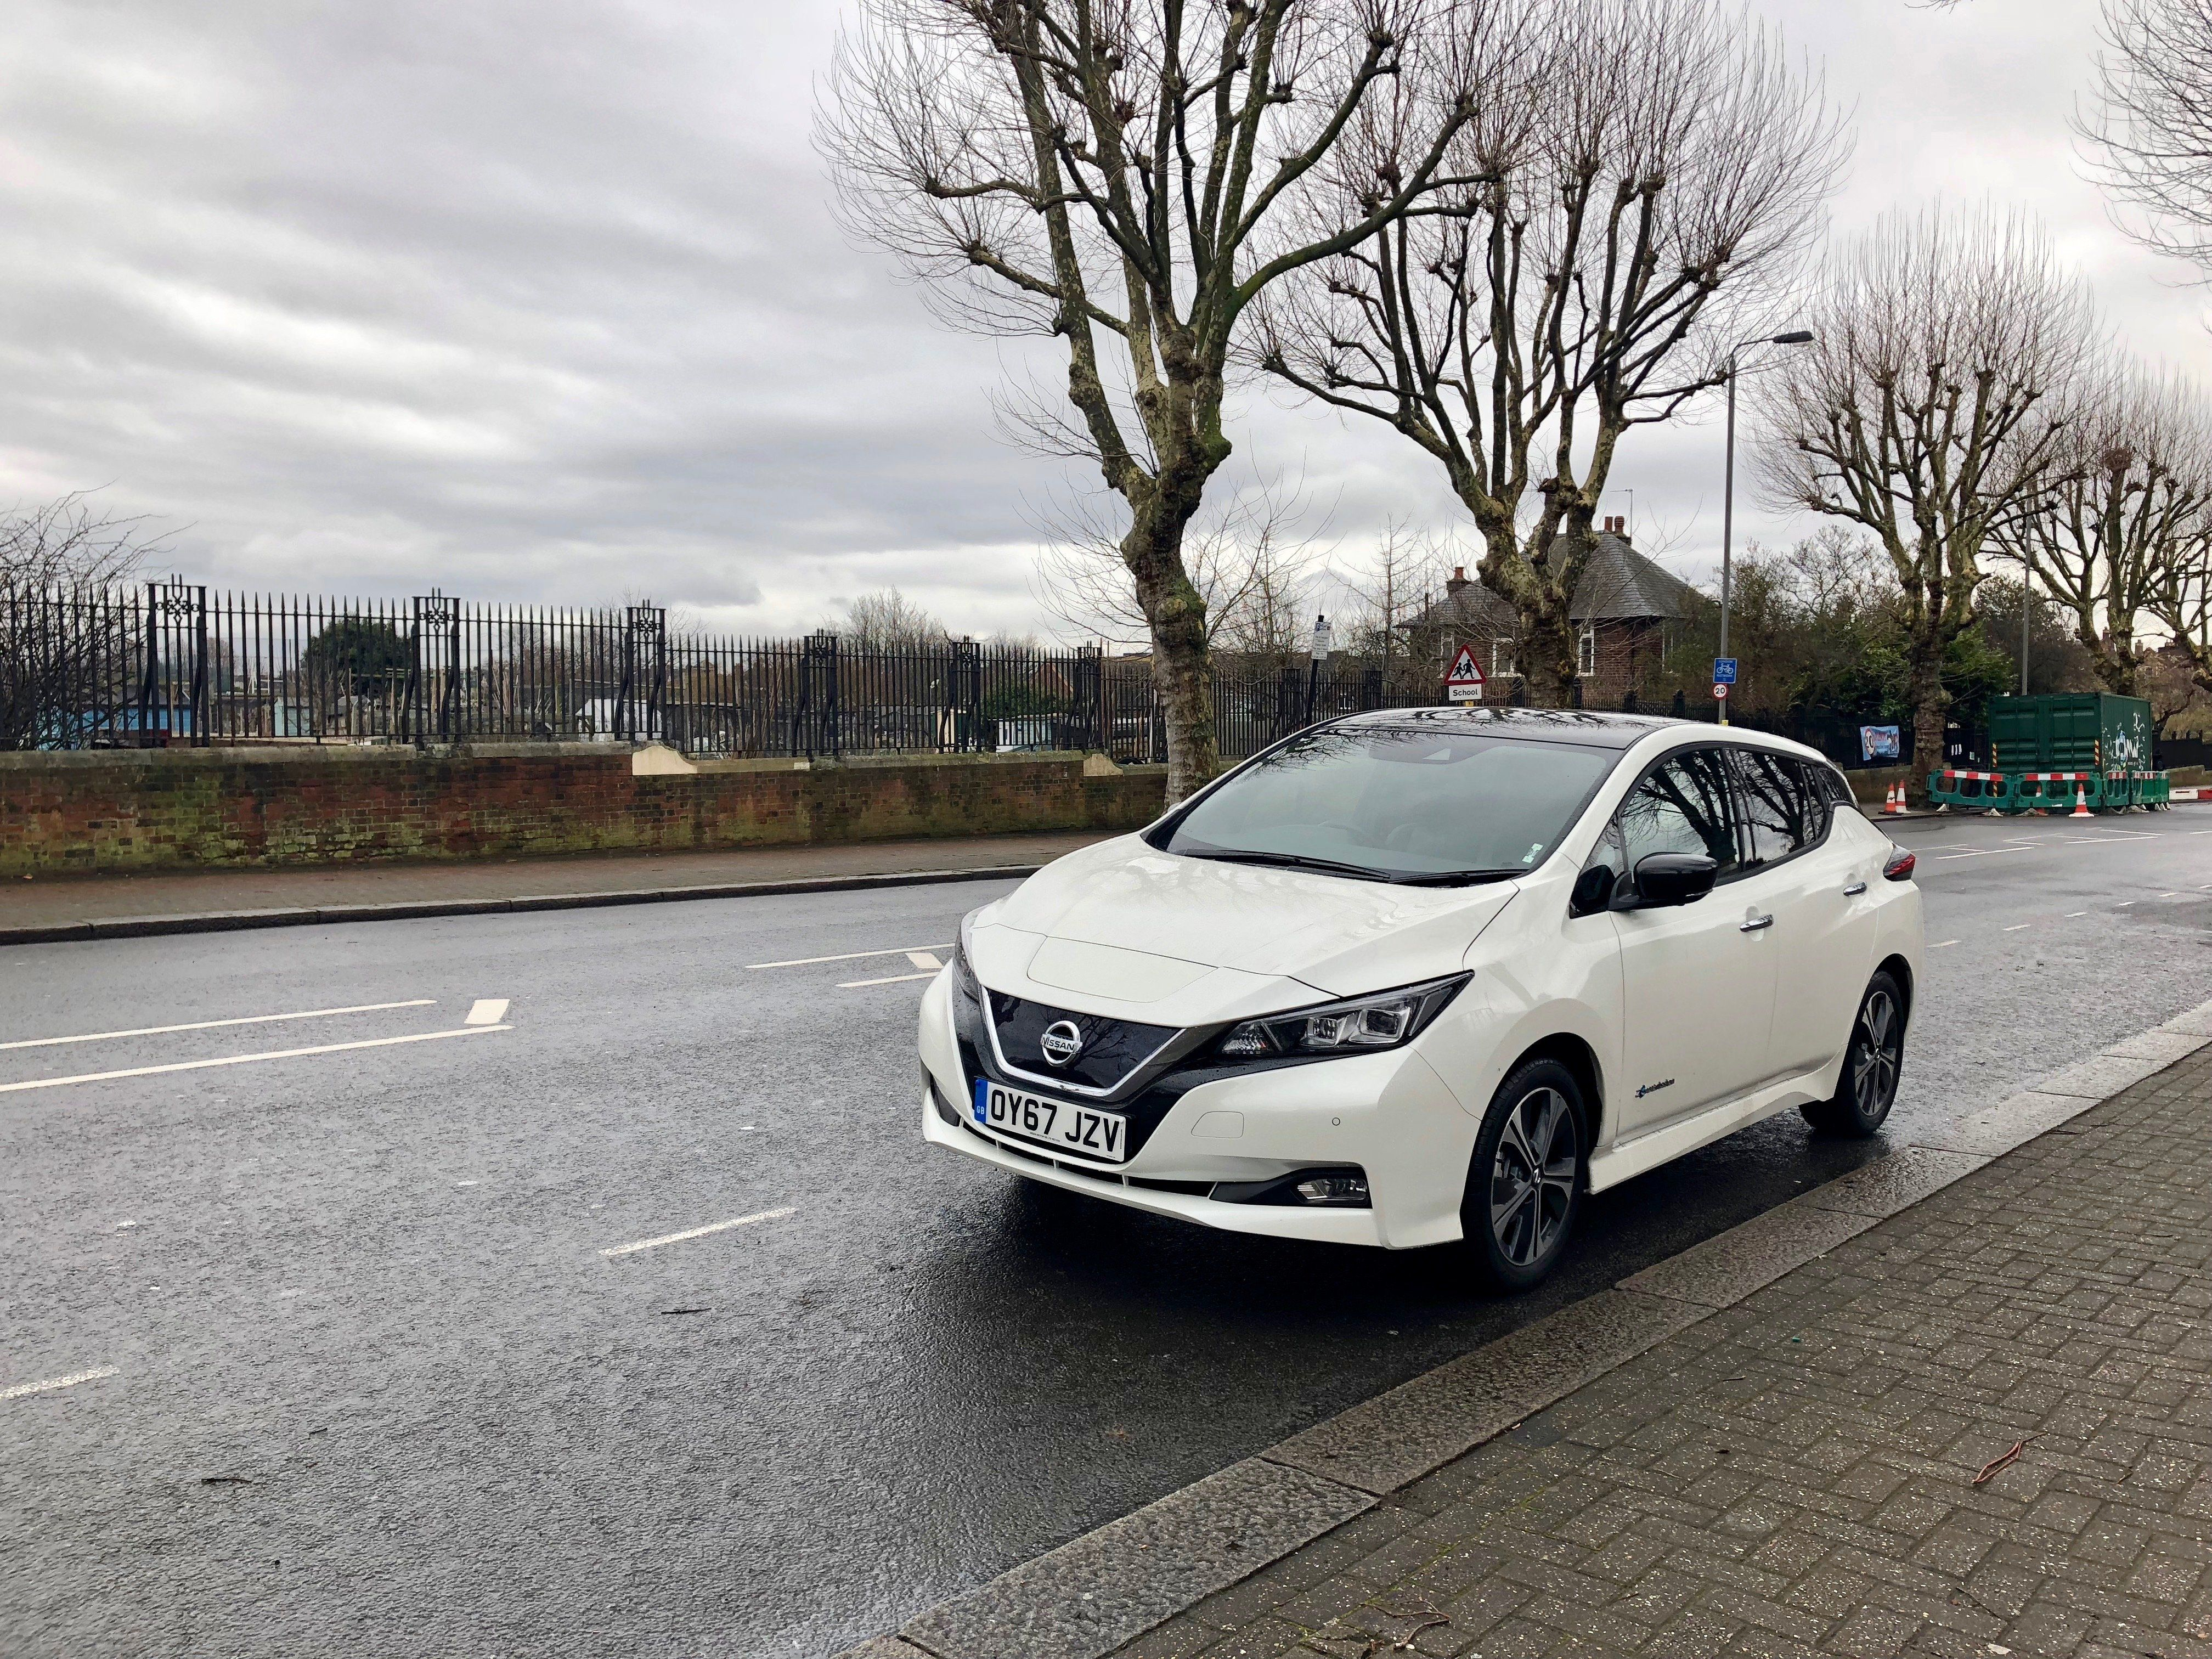 Nissan Leaf 2018: The Electric Car That's More Affordable - HuffPost